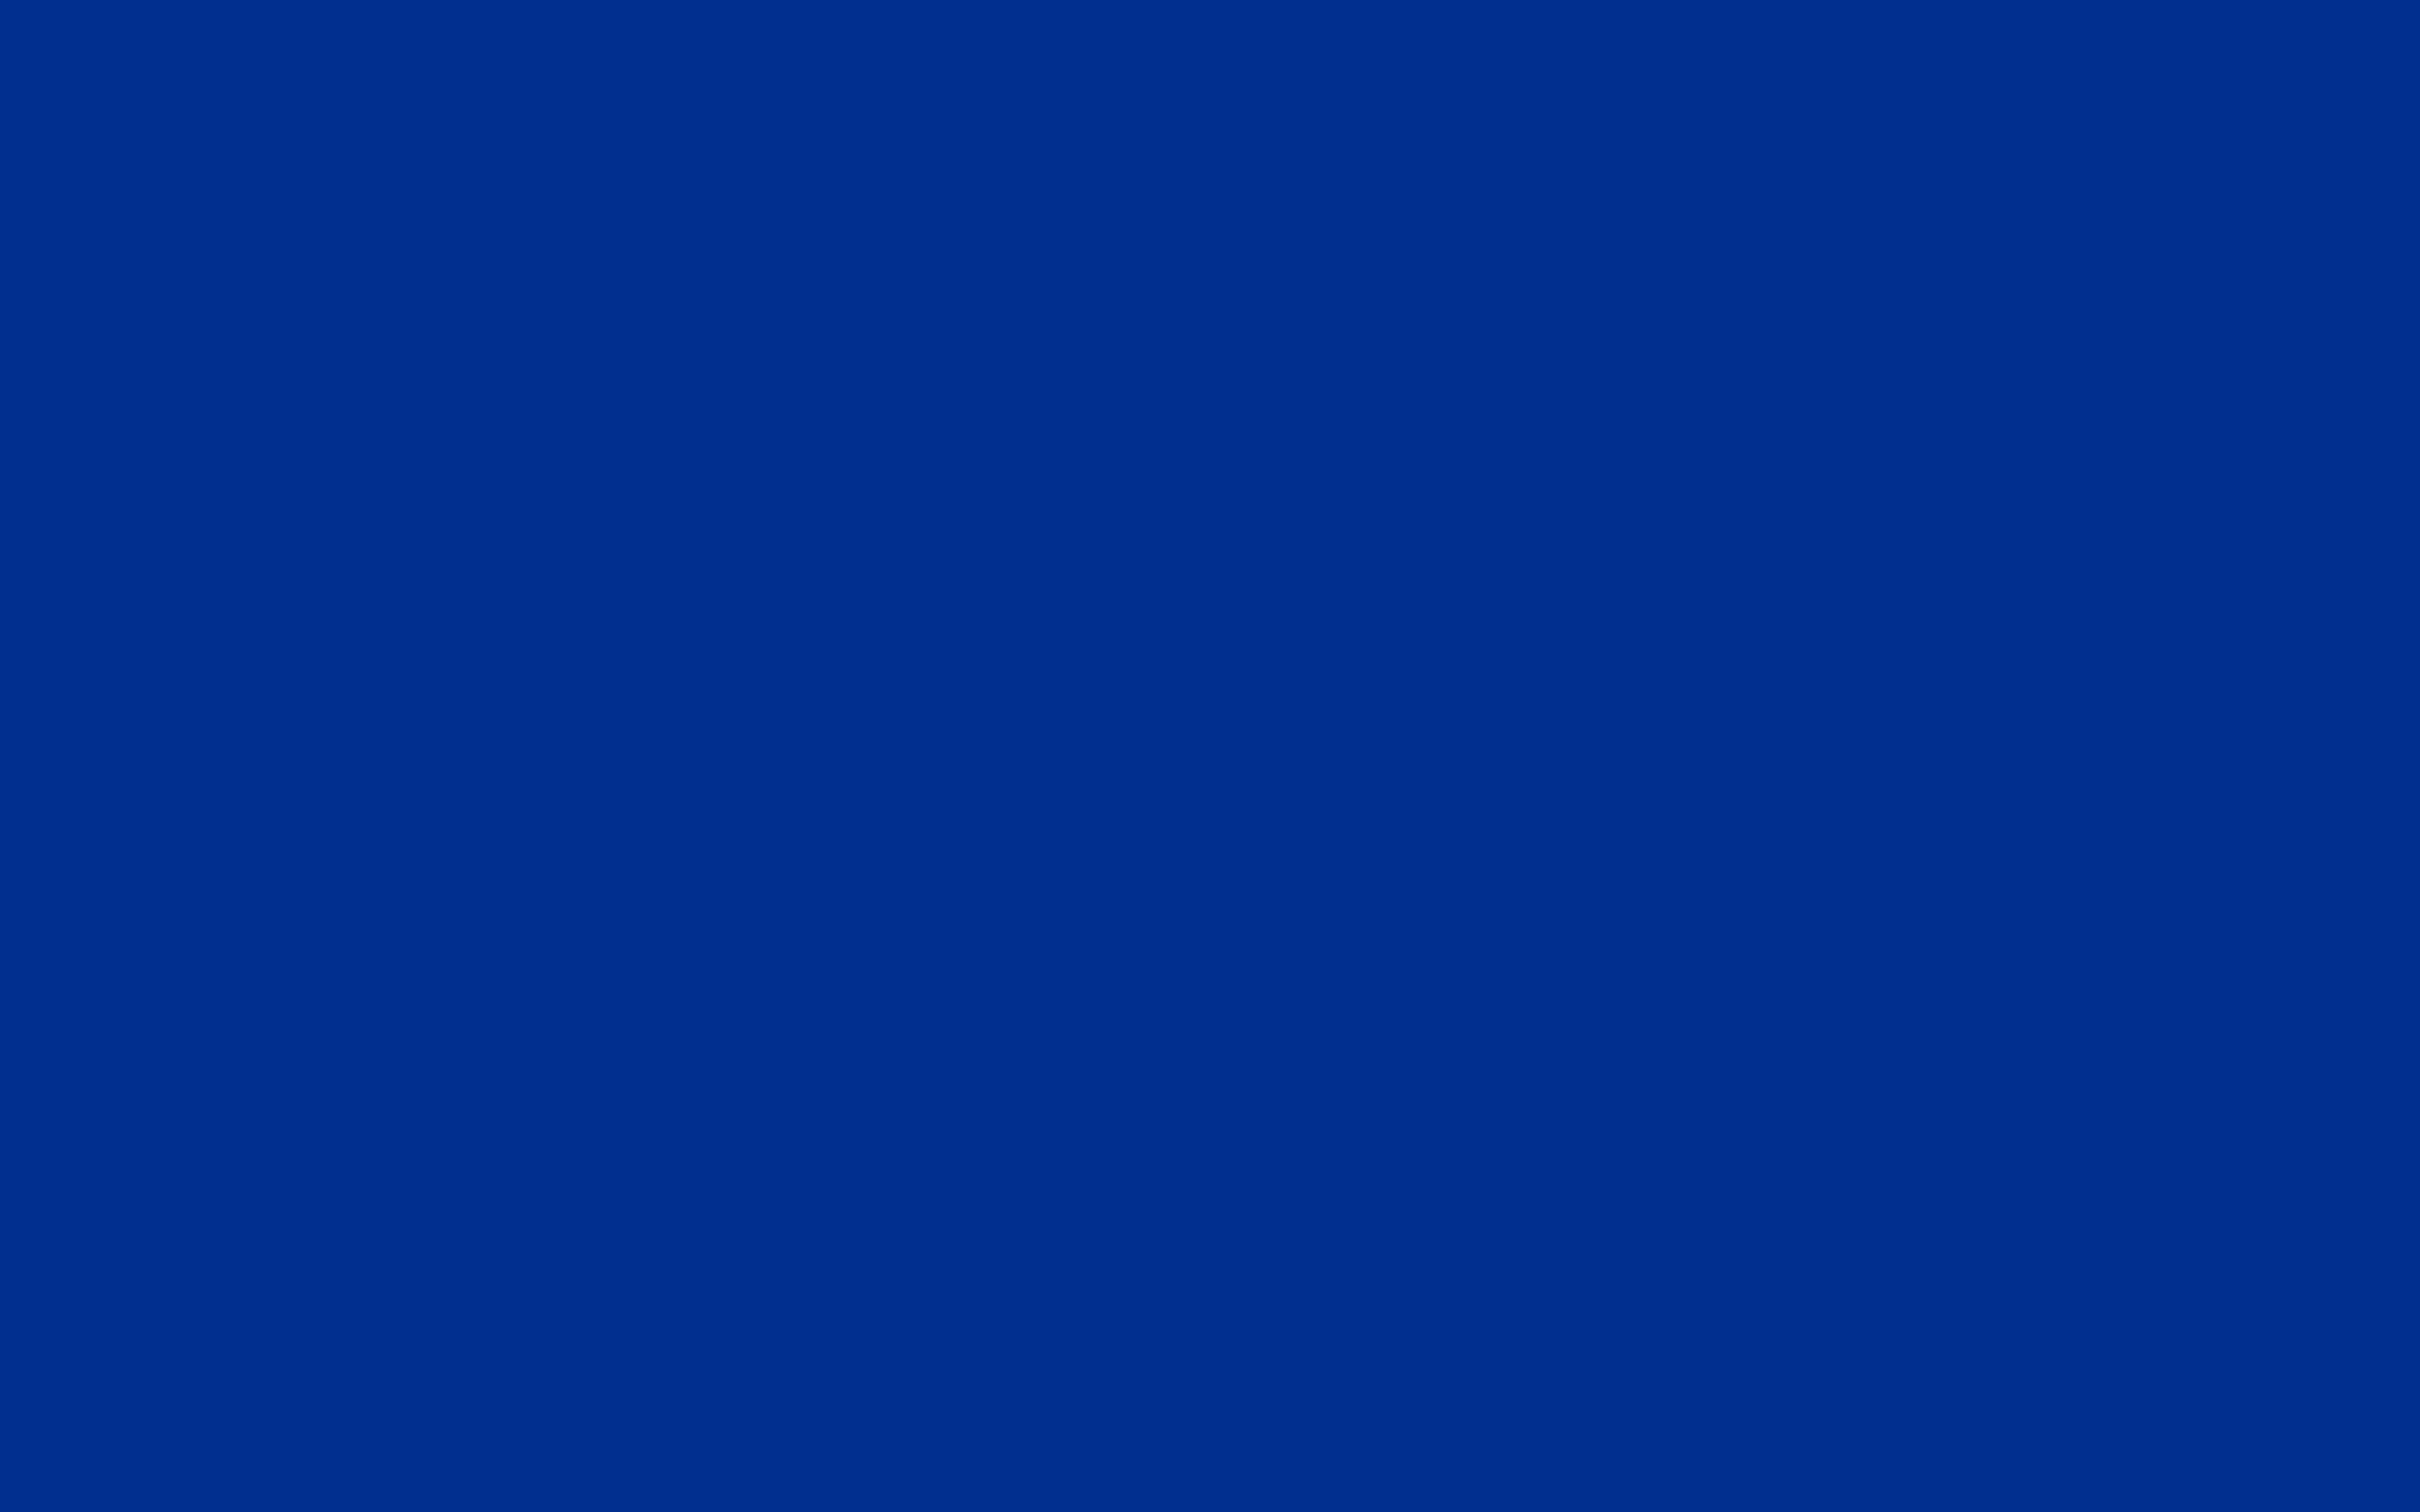 Hd Widescreen All Blue New All Blue Wallpapers